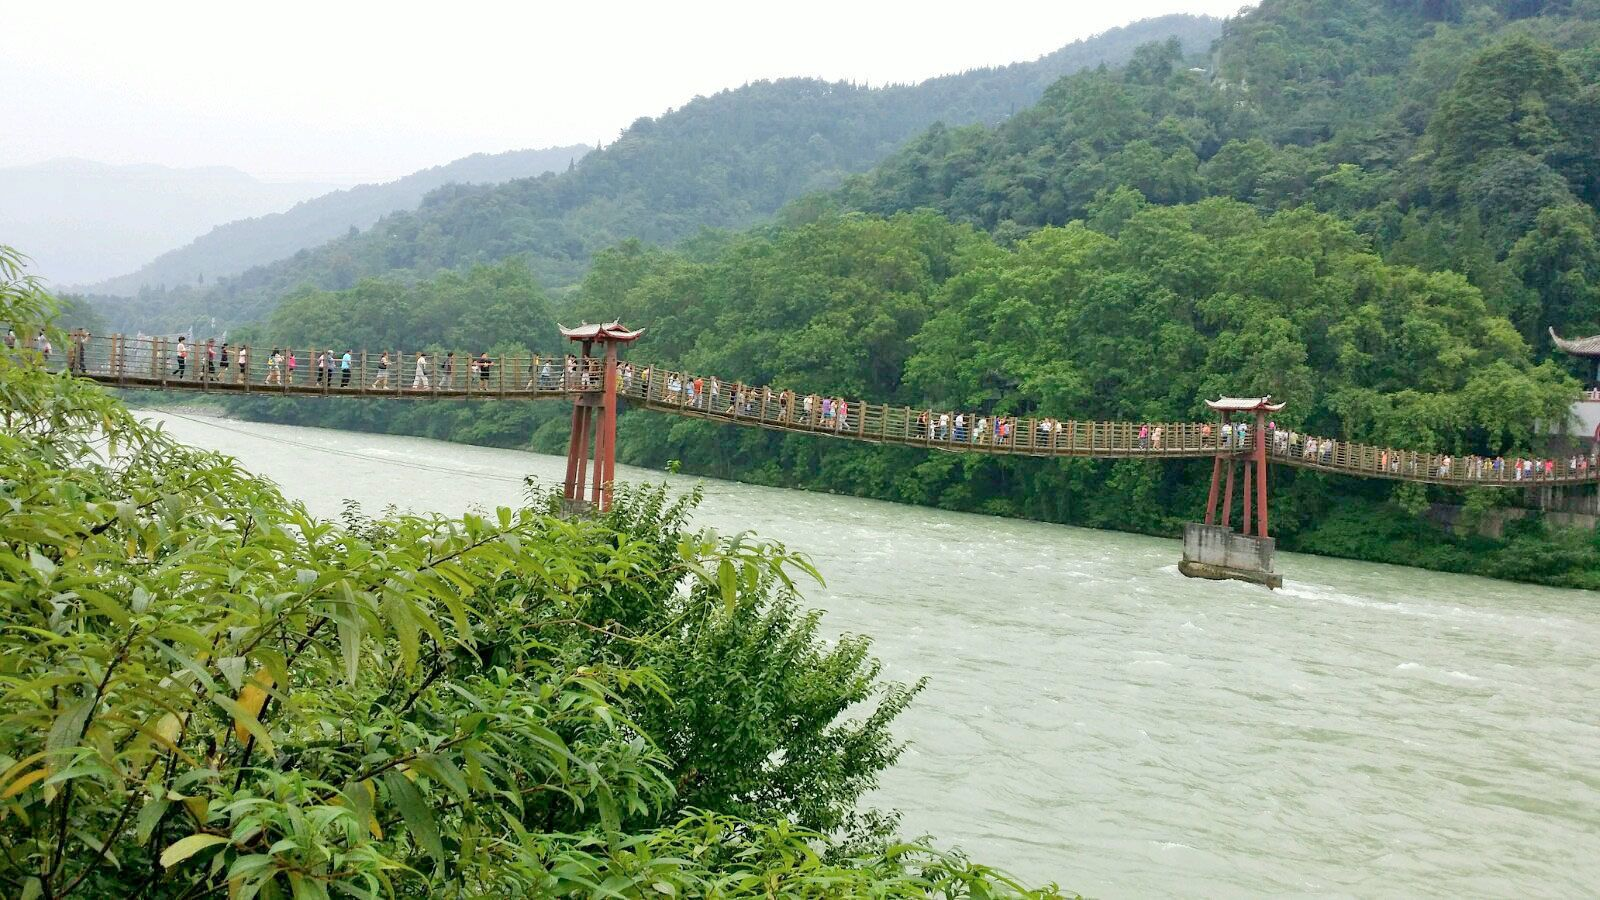 Day view of Dujiangyan City in China